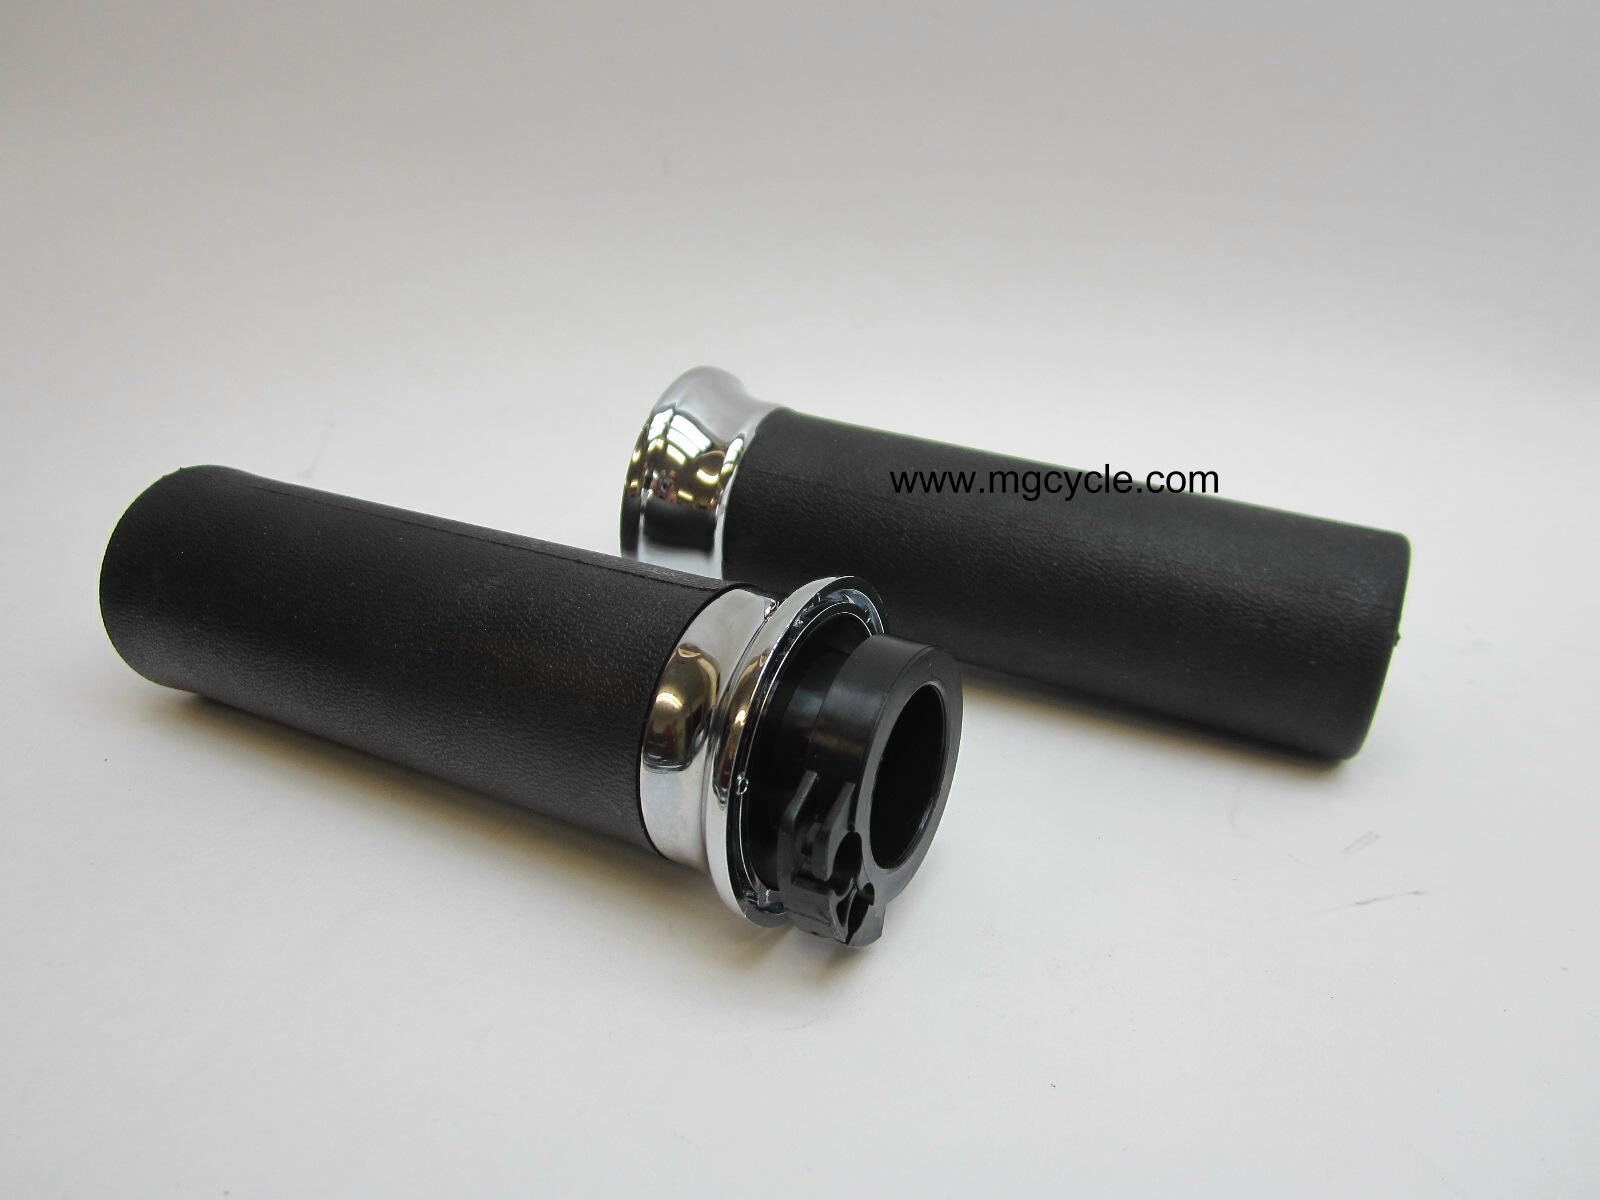 Hand grips with throttle drum, V11 California models since 2001